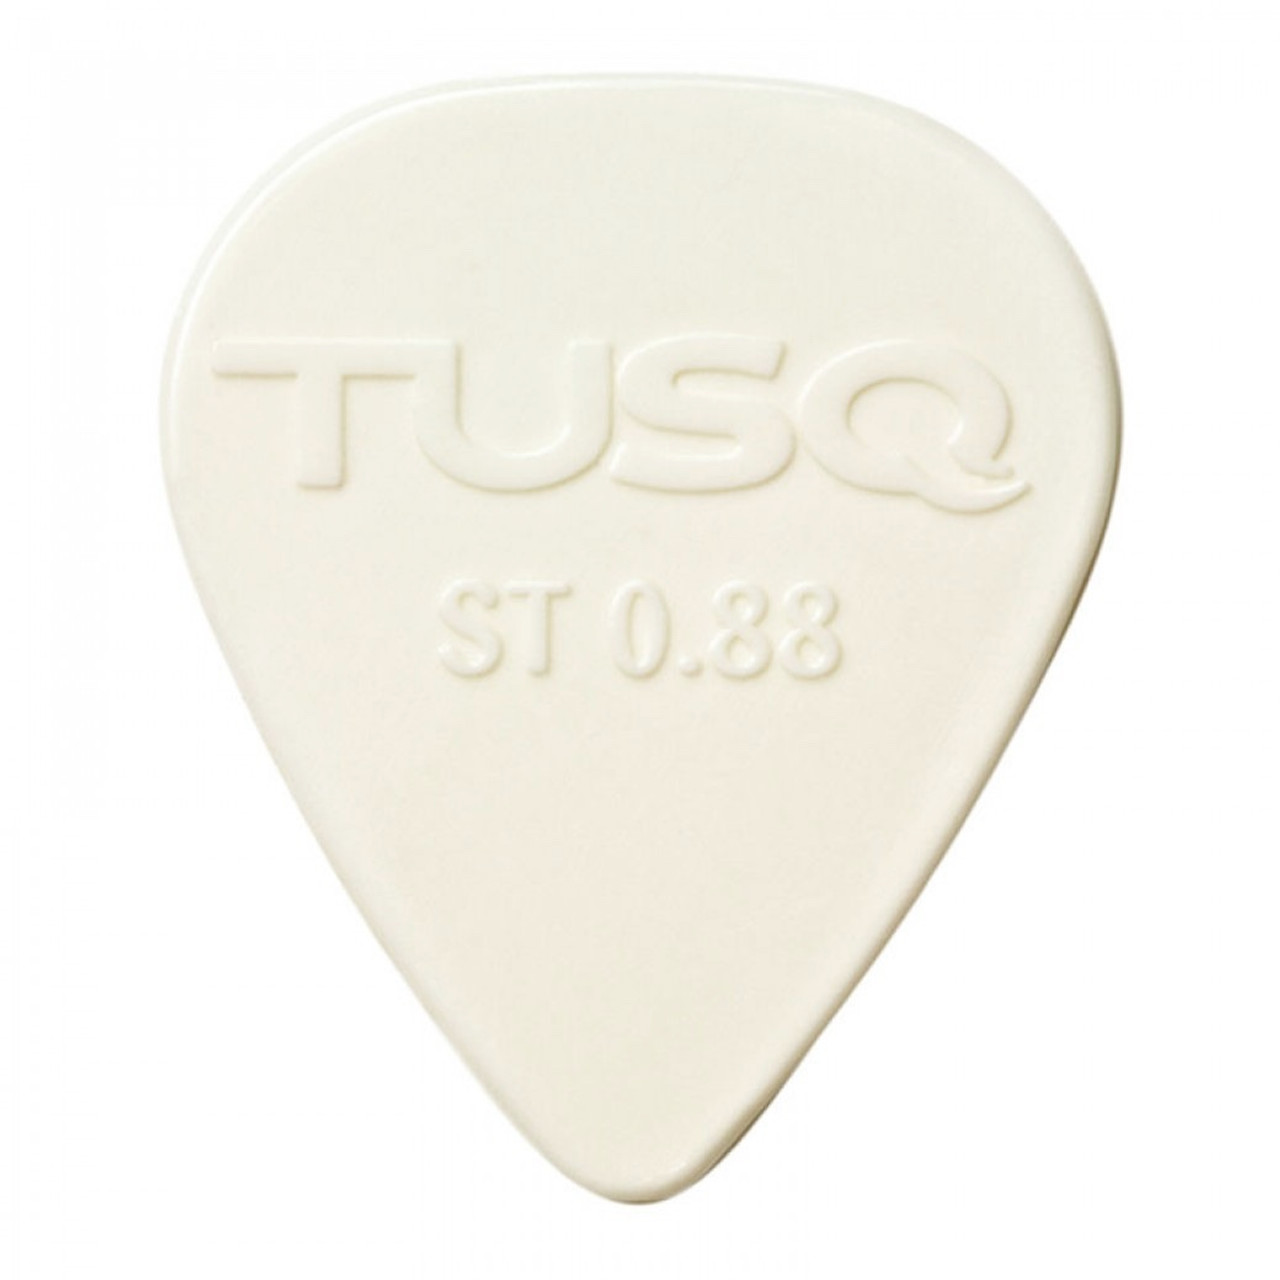 Graphtech Tusq Bright Picks